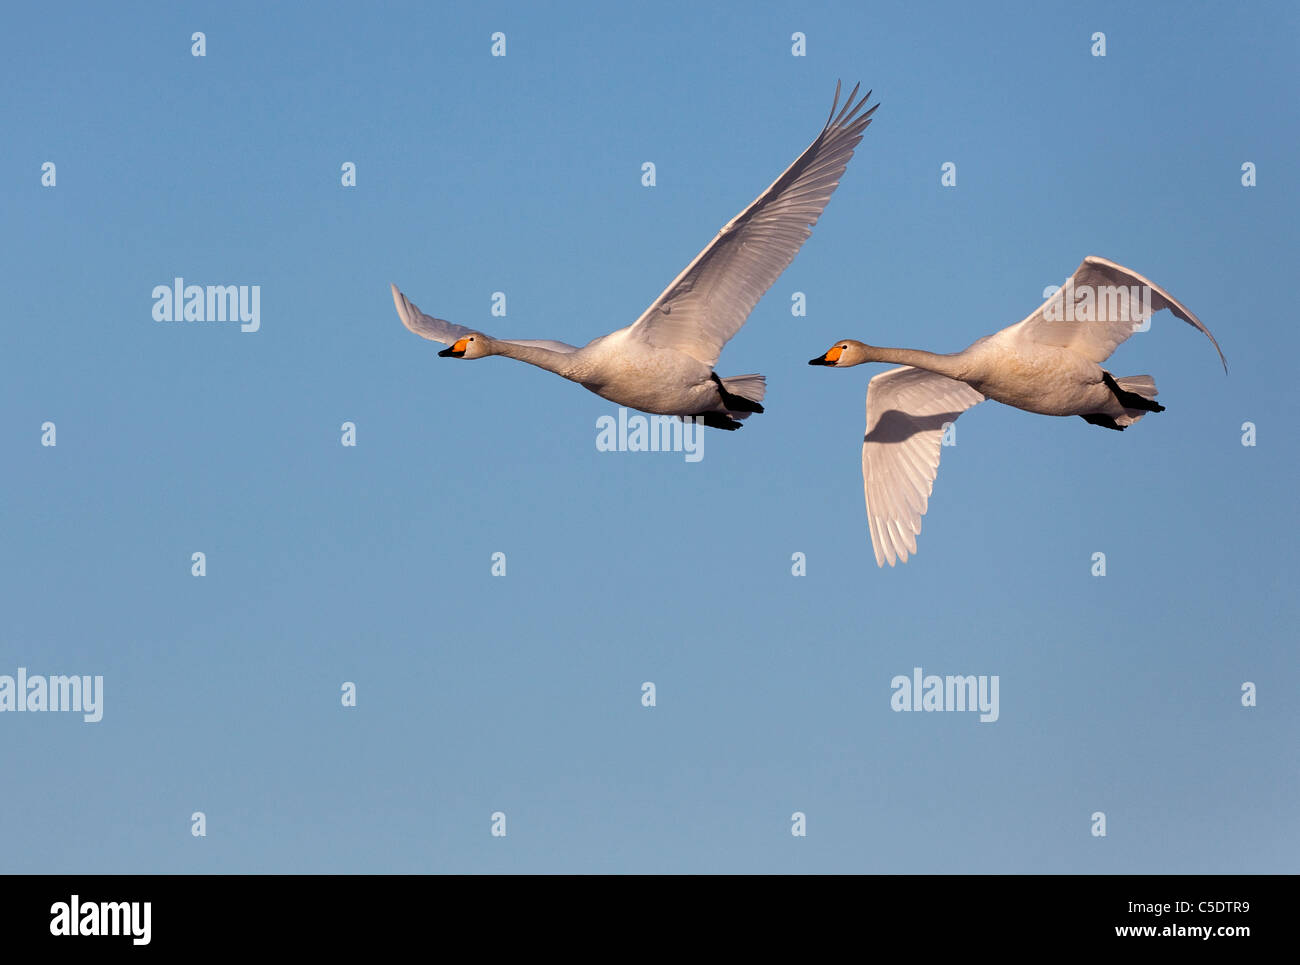 Low angle view of two flying whooper swans against clear sky Stock Photo